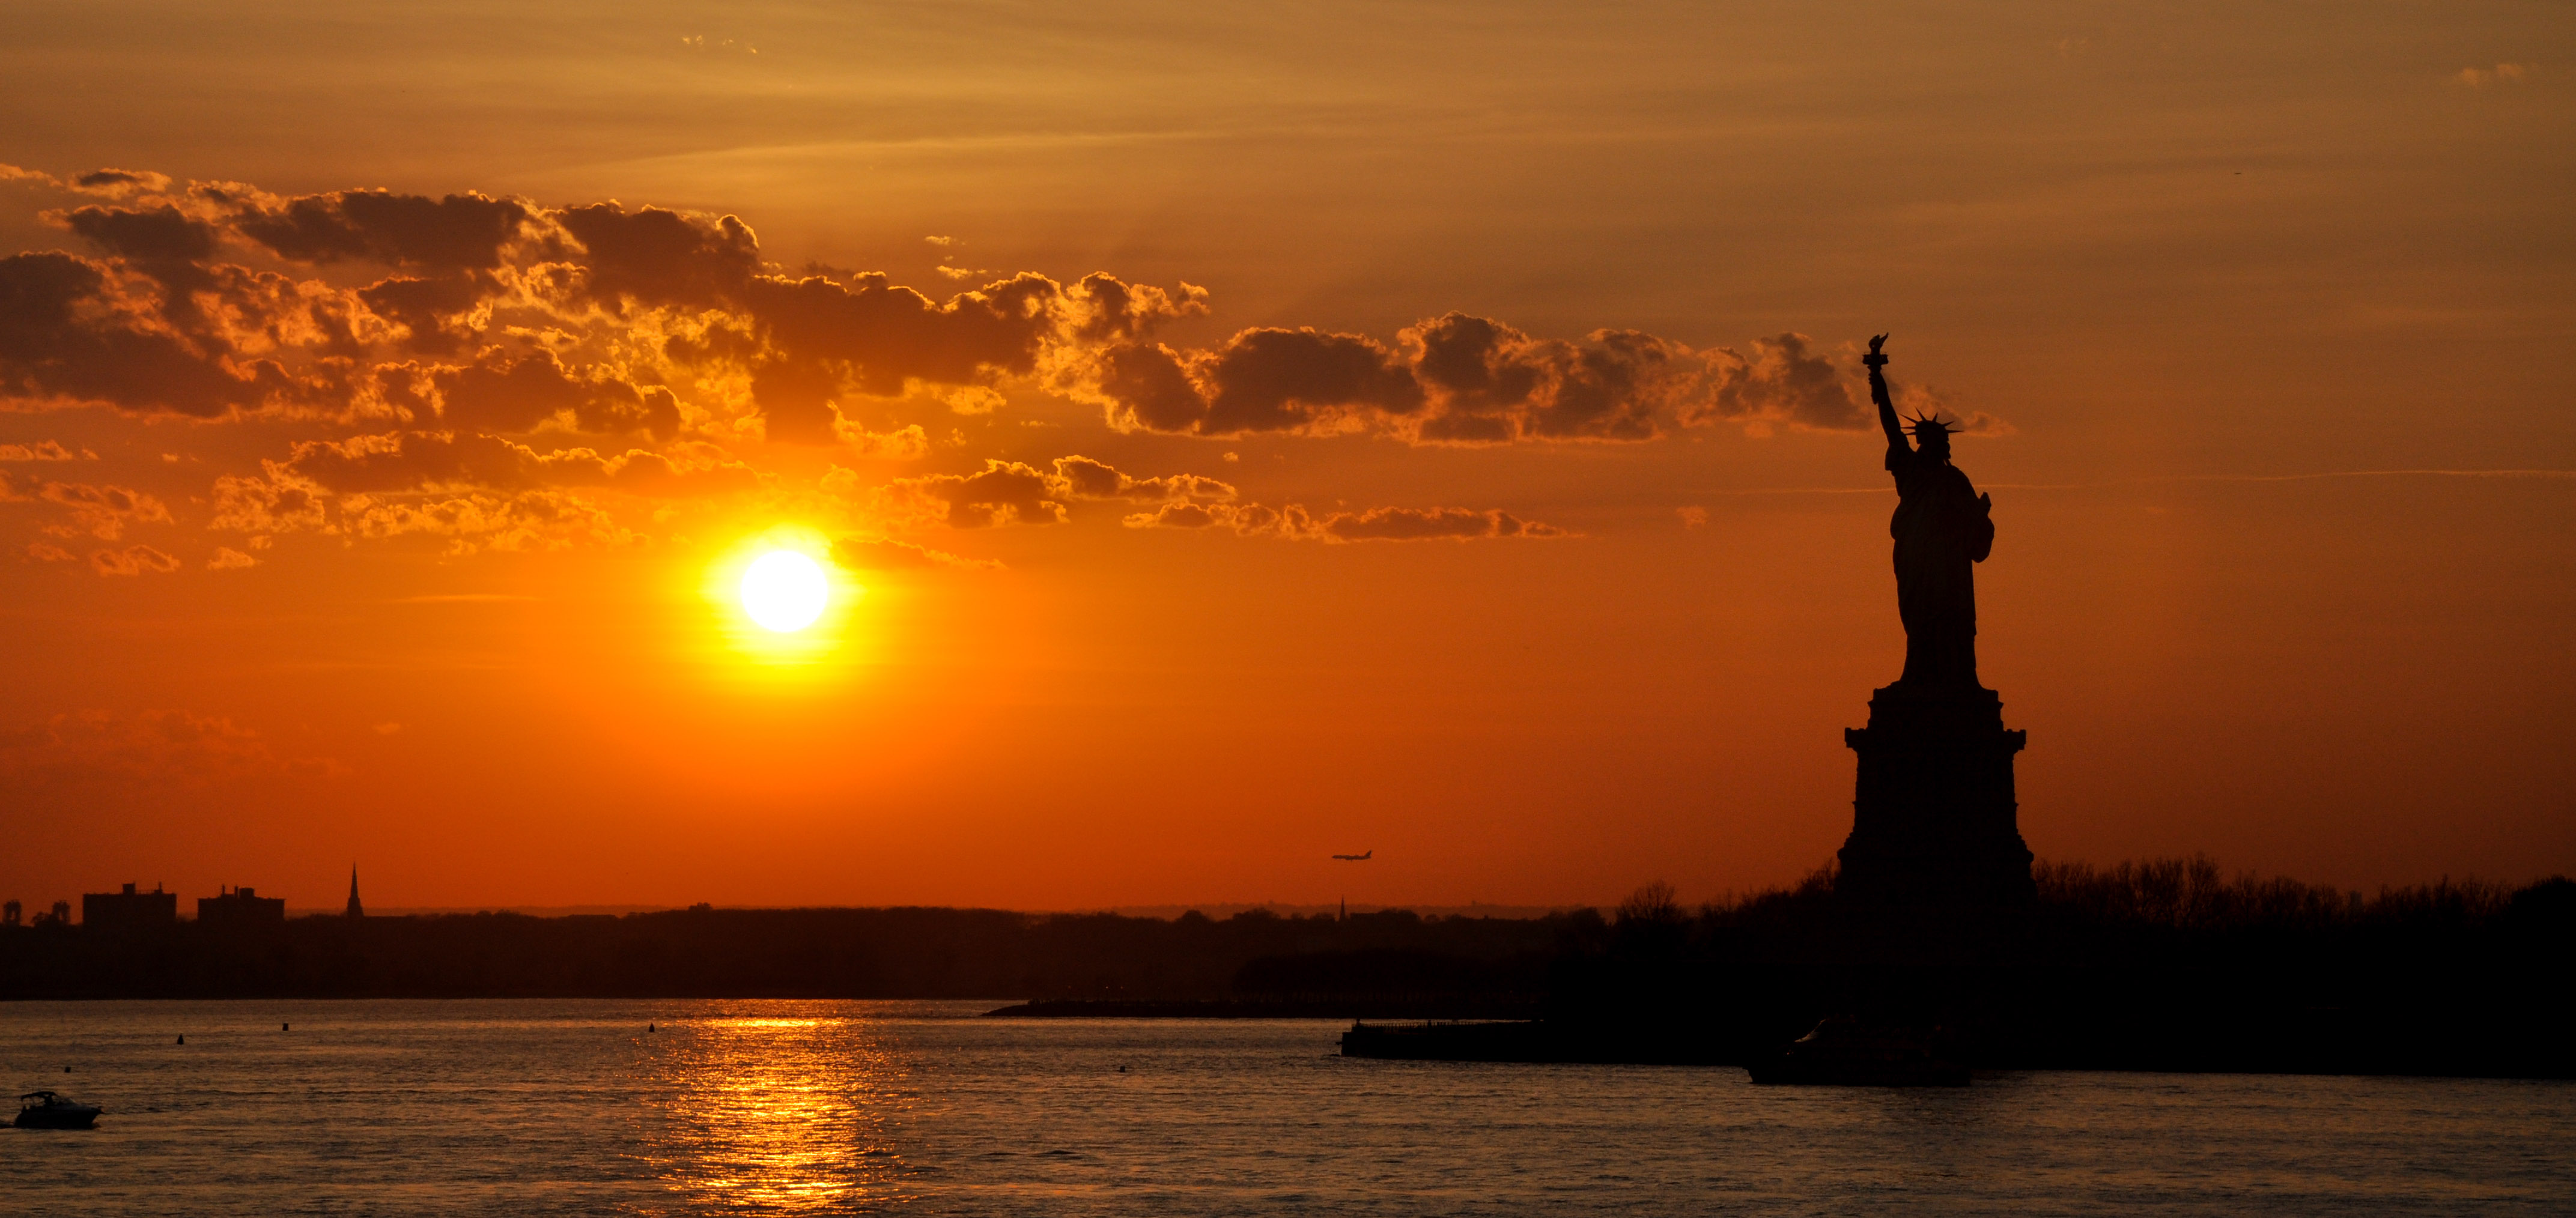 New York: Liberty at sunset